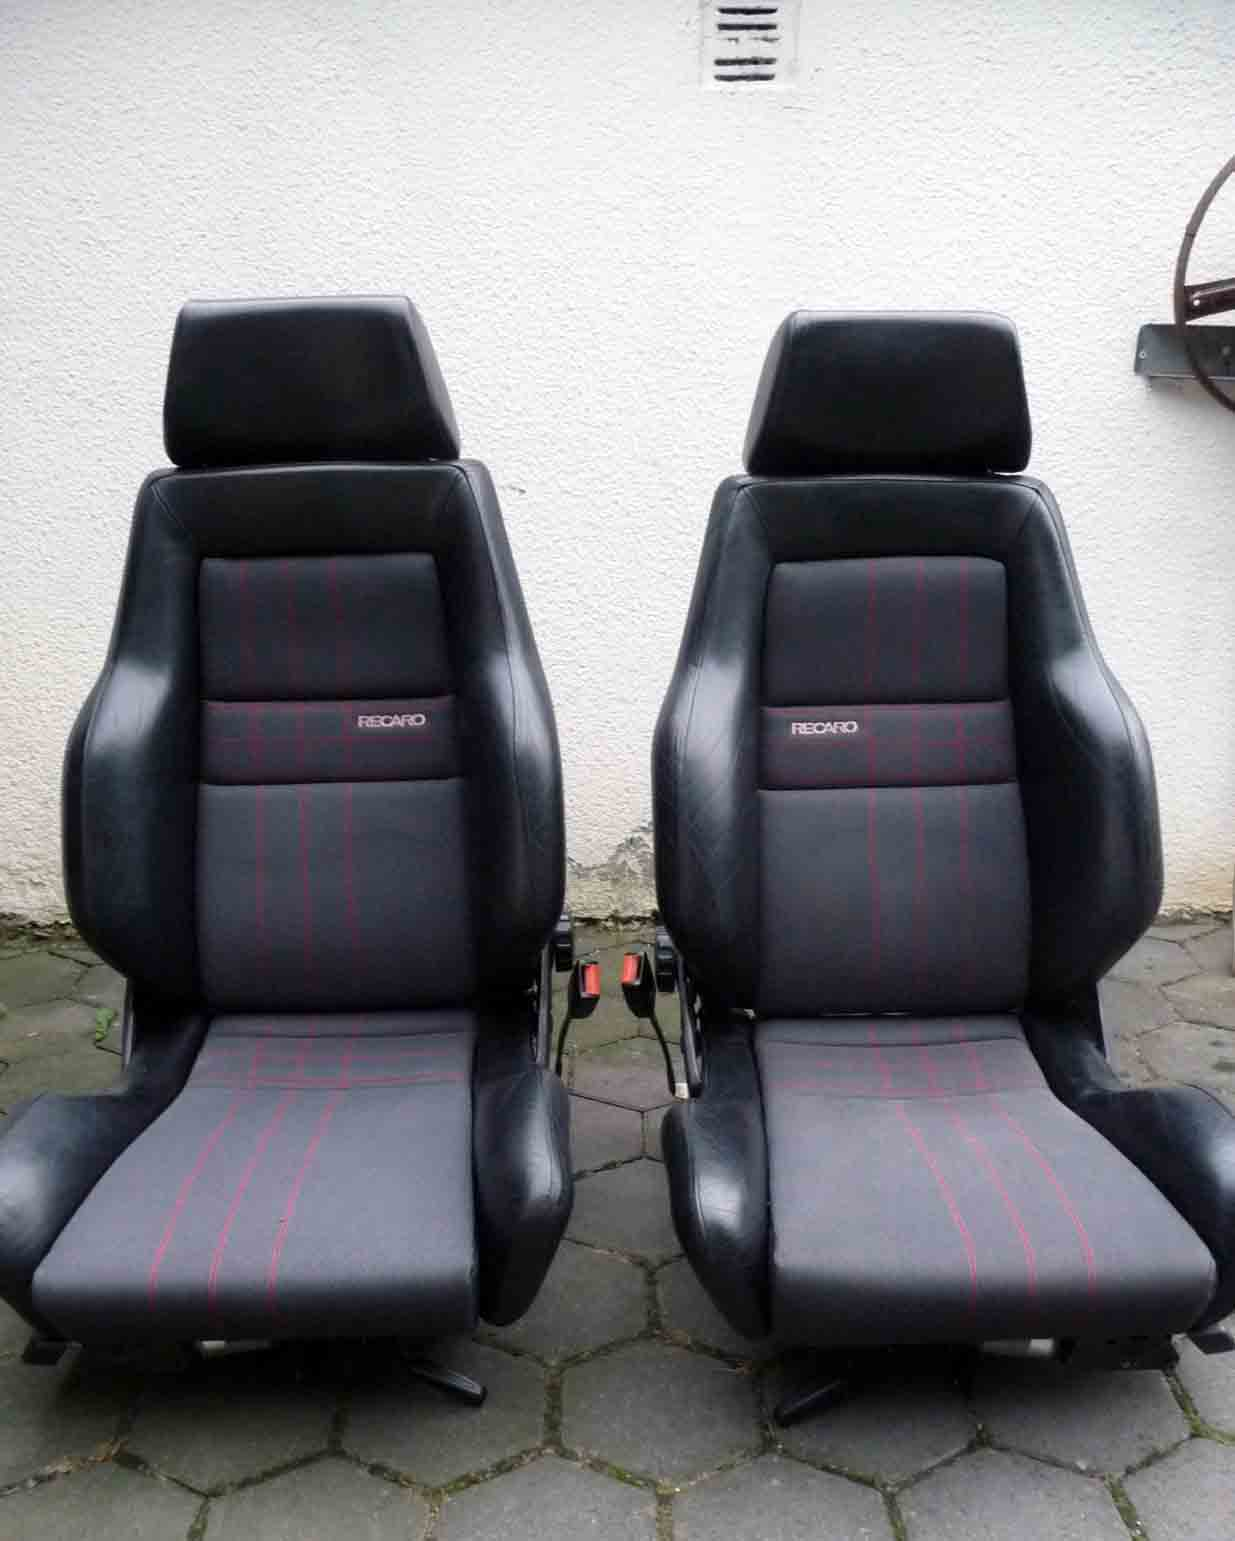 vw golf 2 ii elektrische recaro sitze rallye golf g60g biete. Black Bedroom Furniture Sets. Home Design Ideas